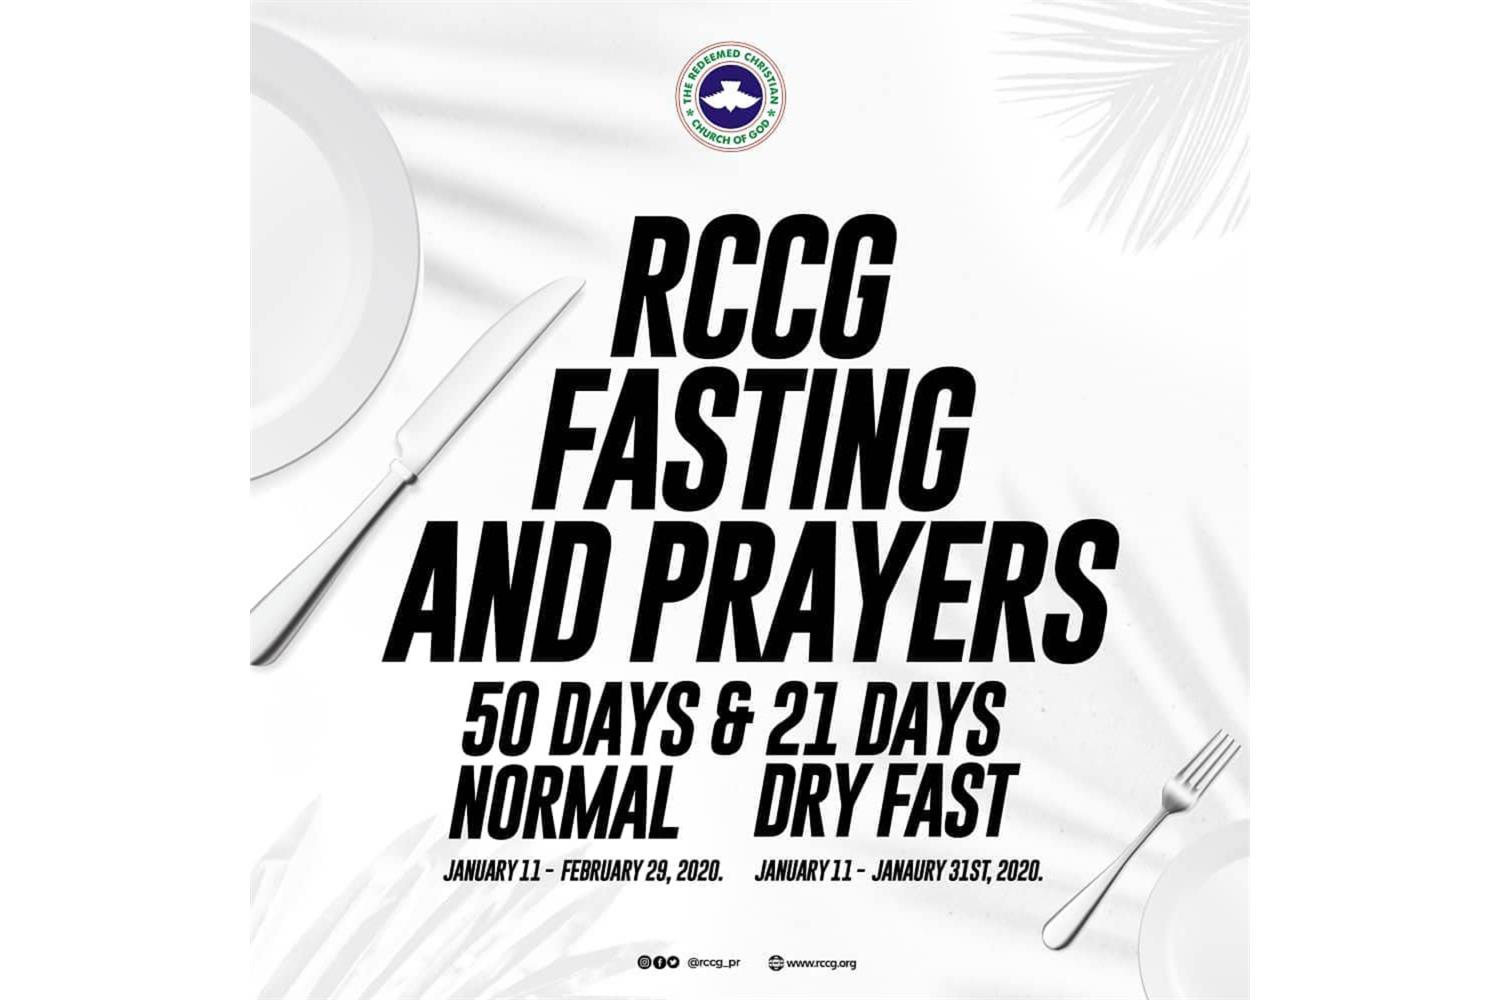 FASTING! FASTING!! FASTING!!!